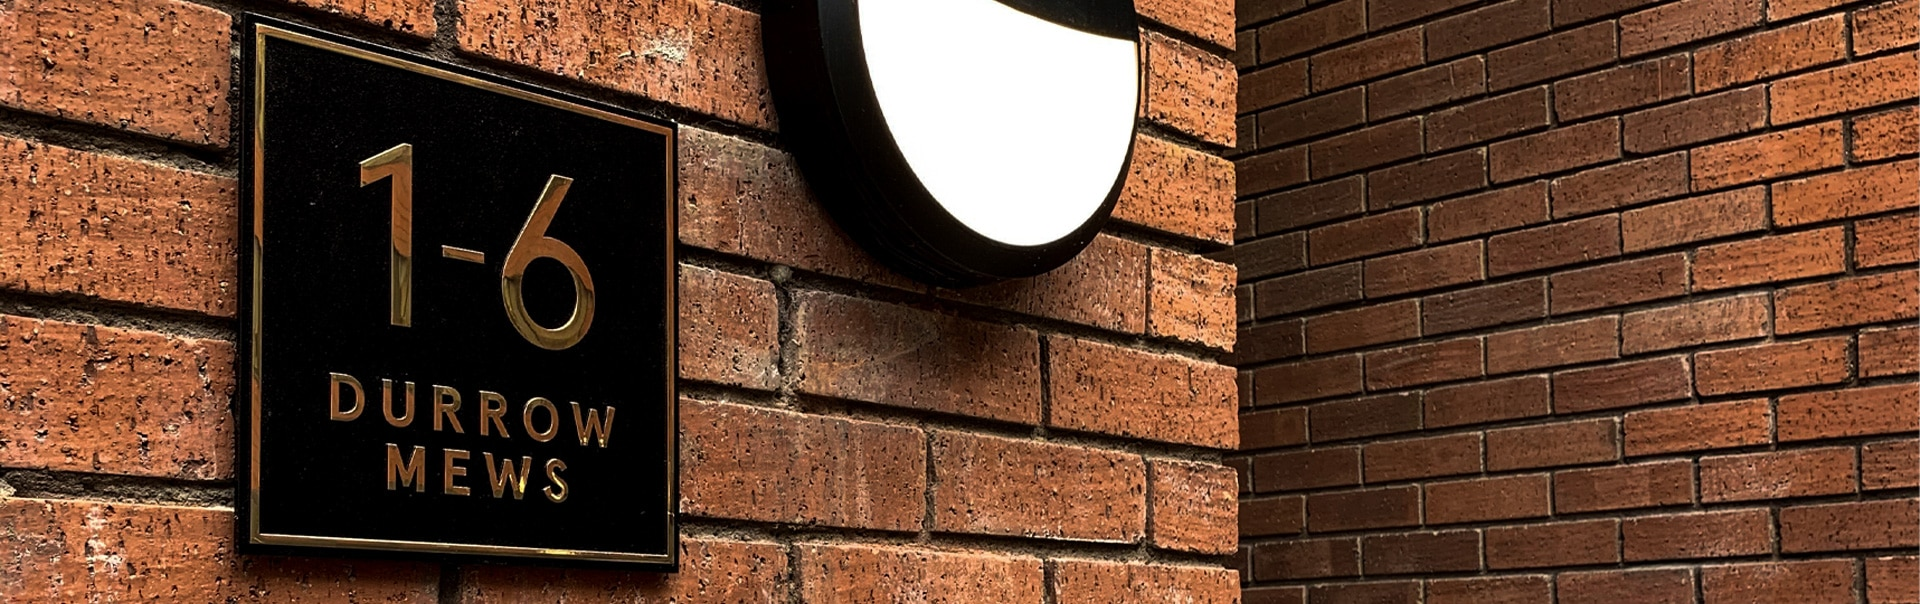 A wayfinding plaque in solid bronze gives this residential development an upmarket feel